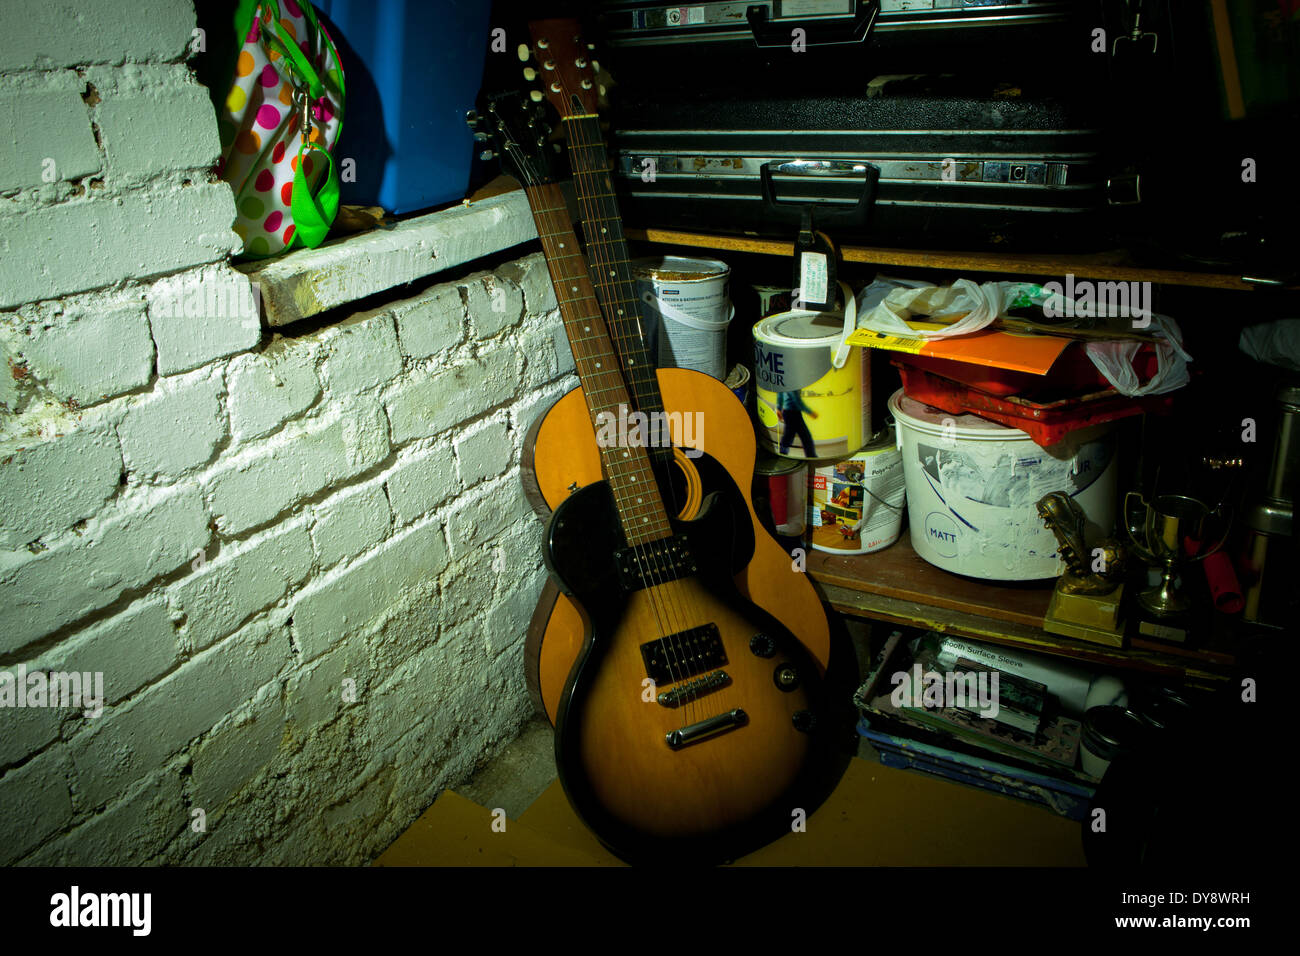 Pair of old guitars stored in cellar Stock Photo: 68422693